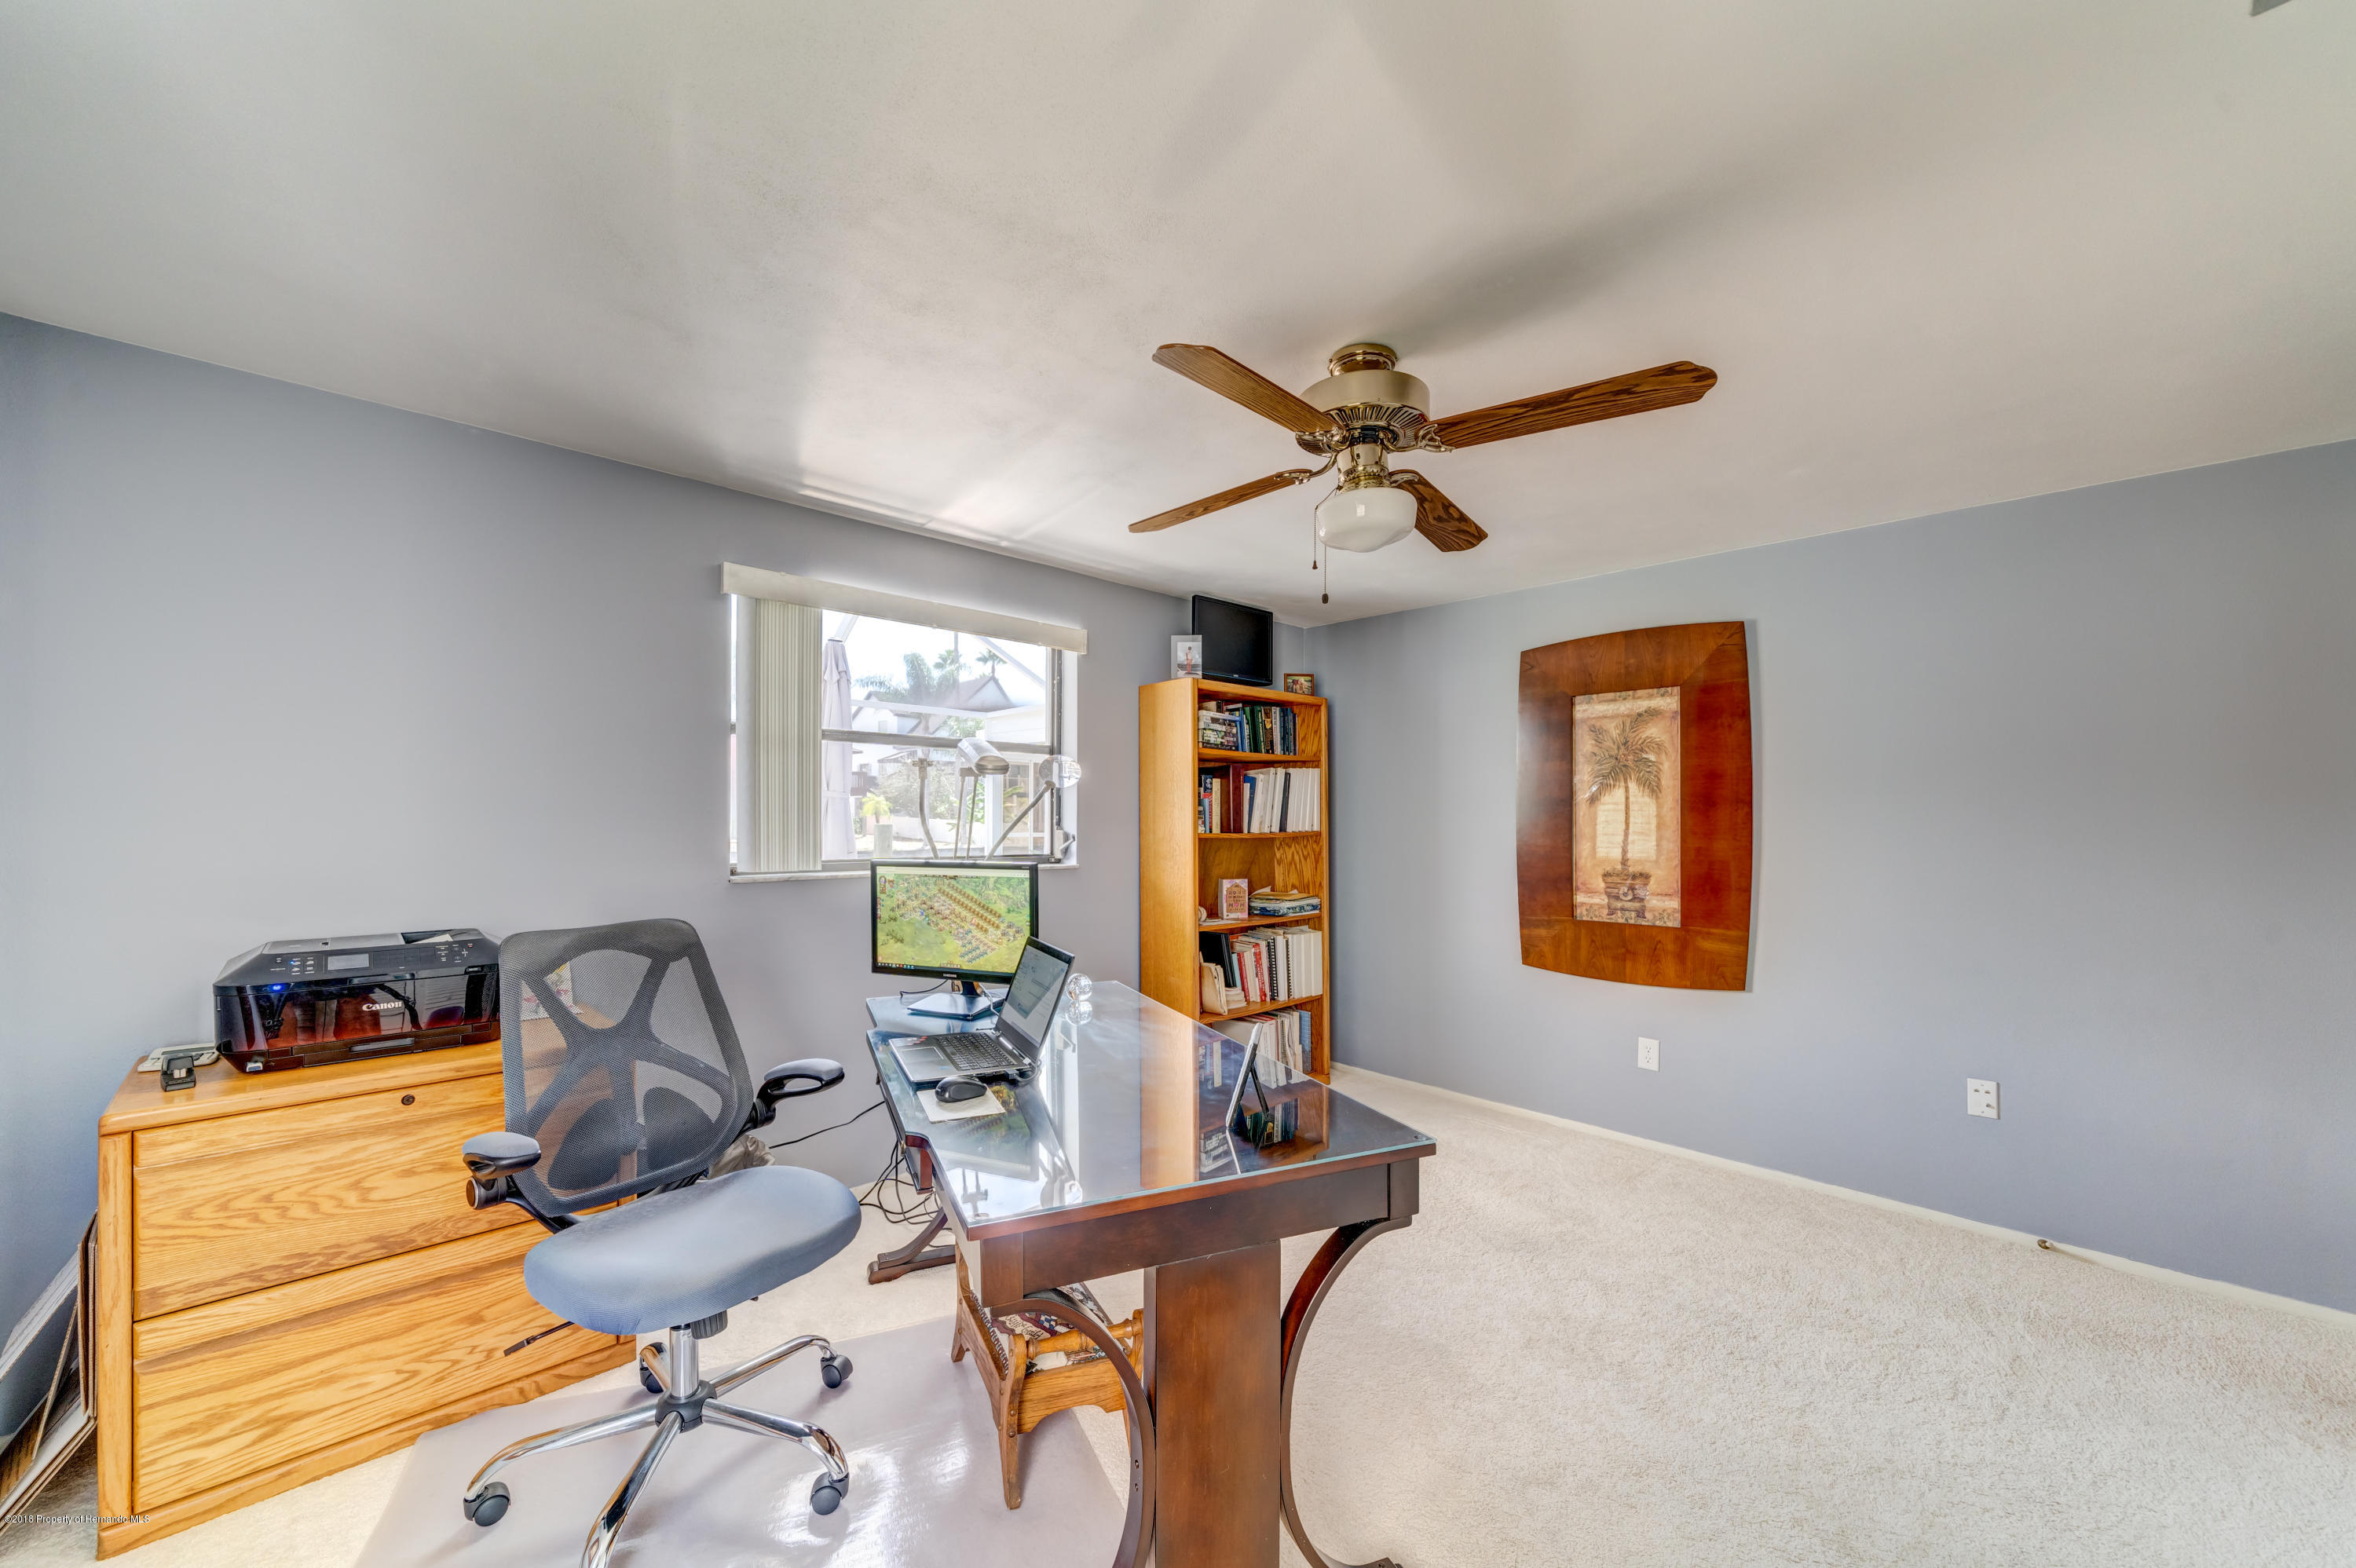 3rd BR/Office